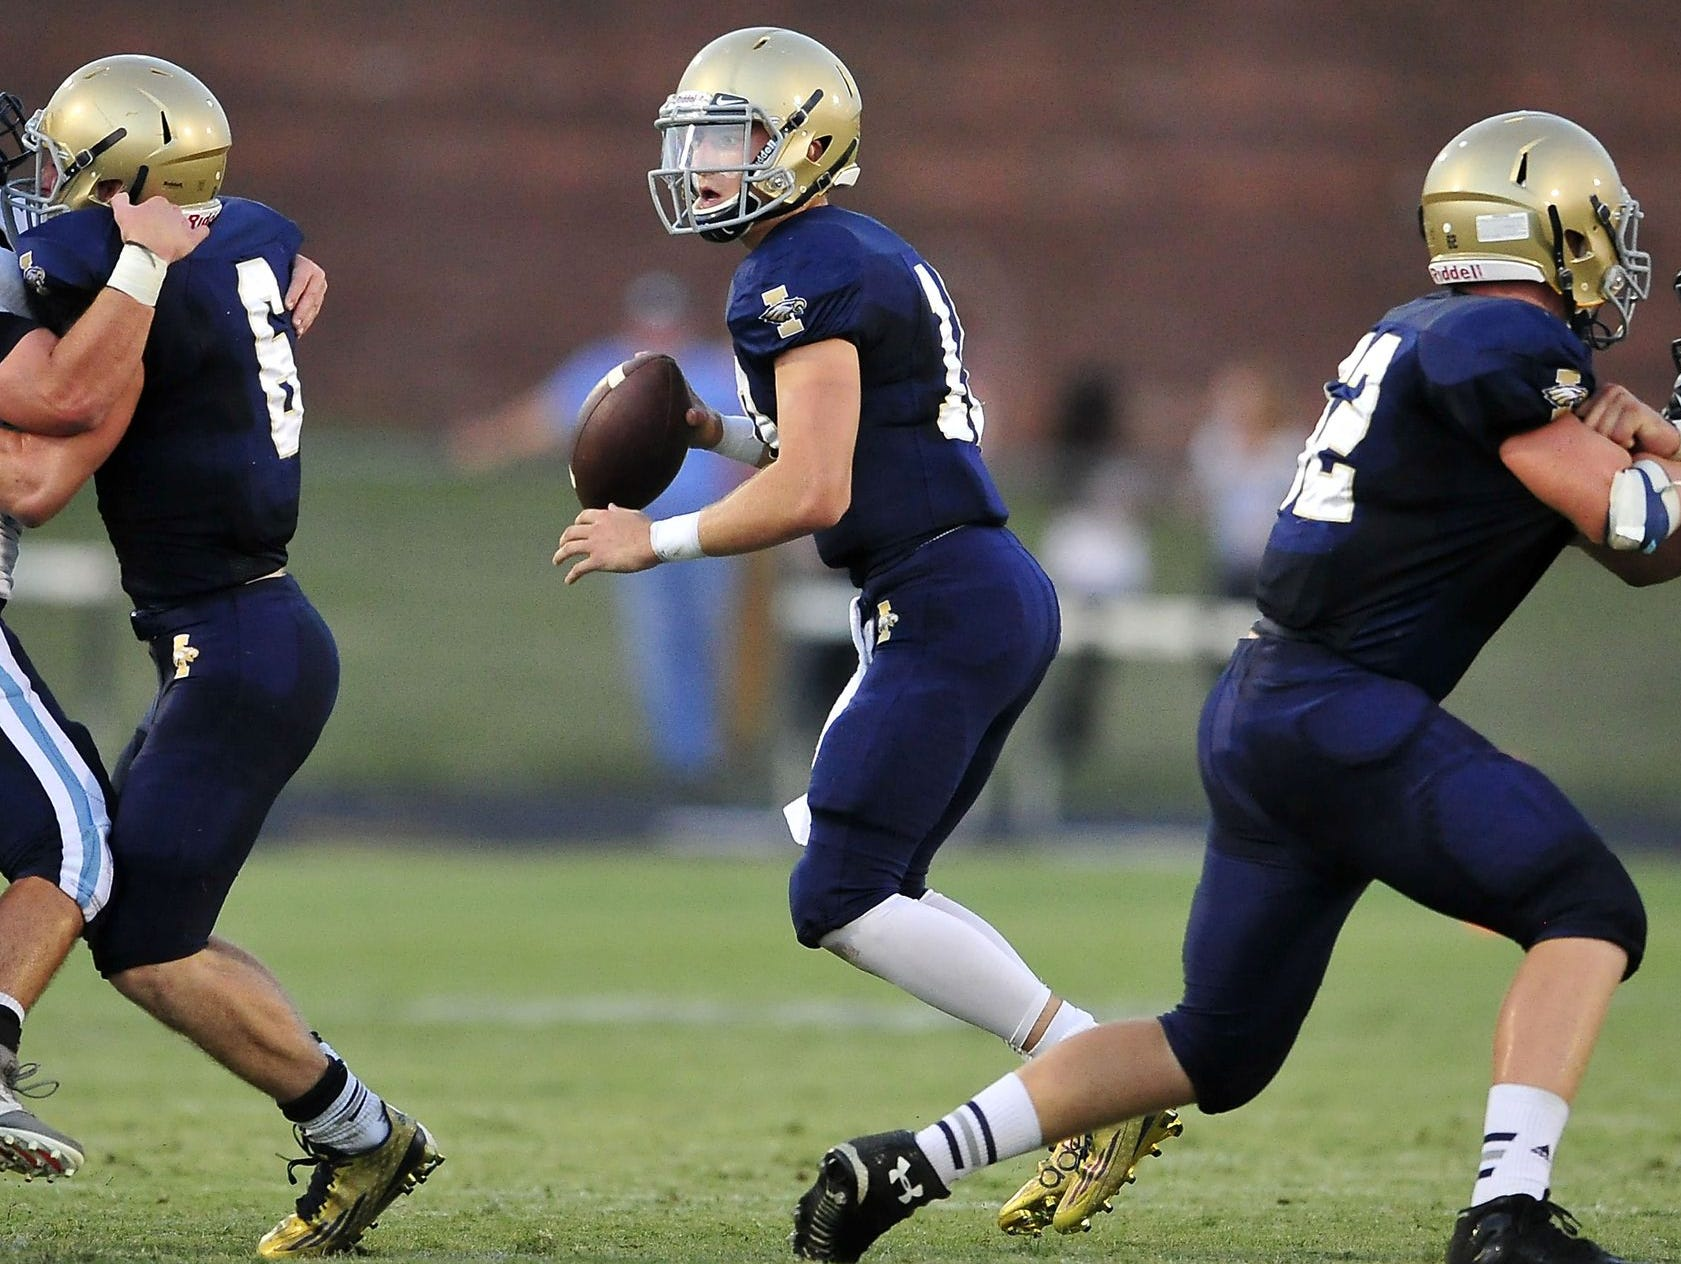 Independence quarterback Andrew Bunch.